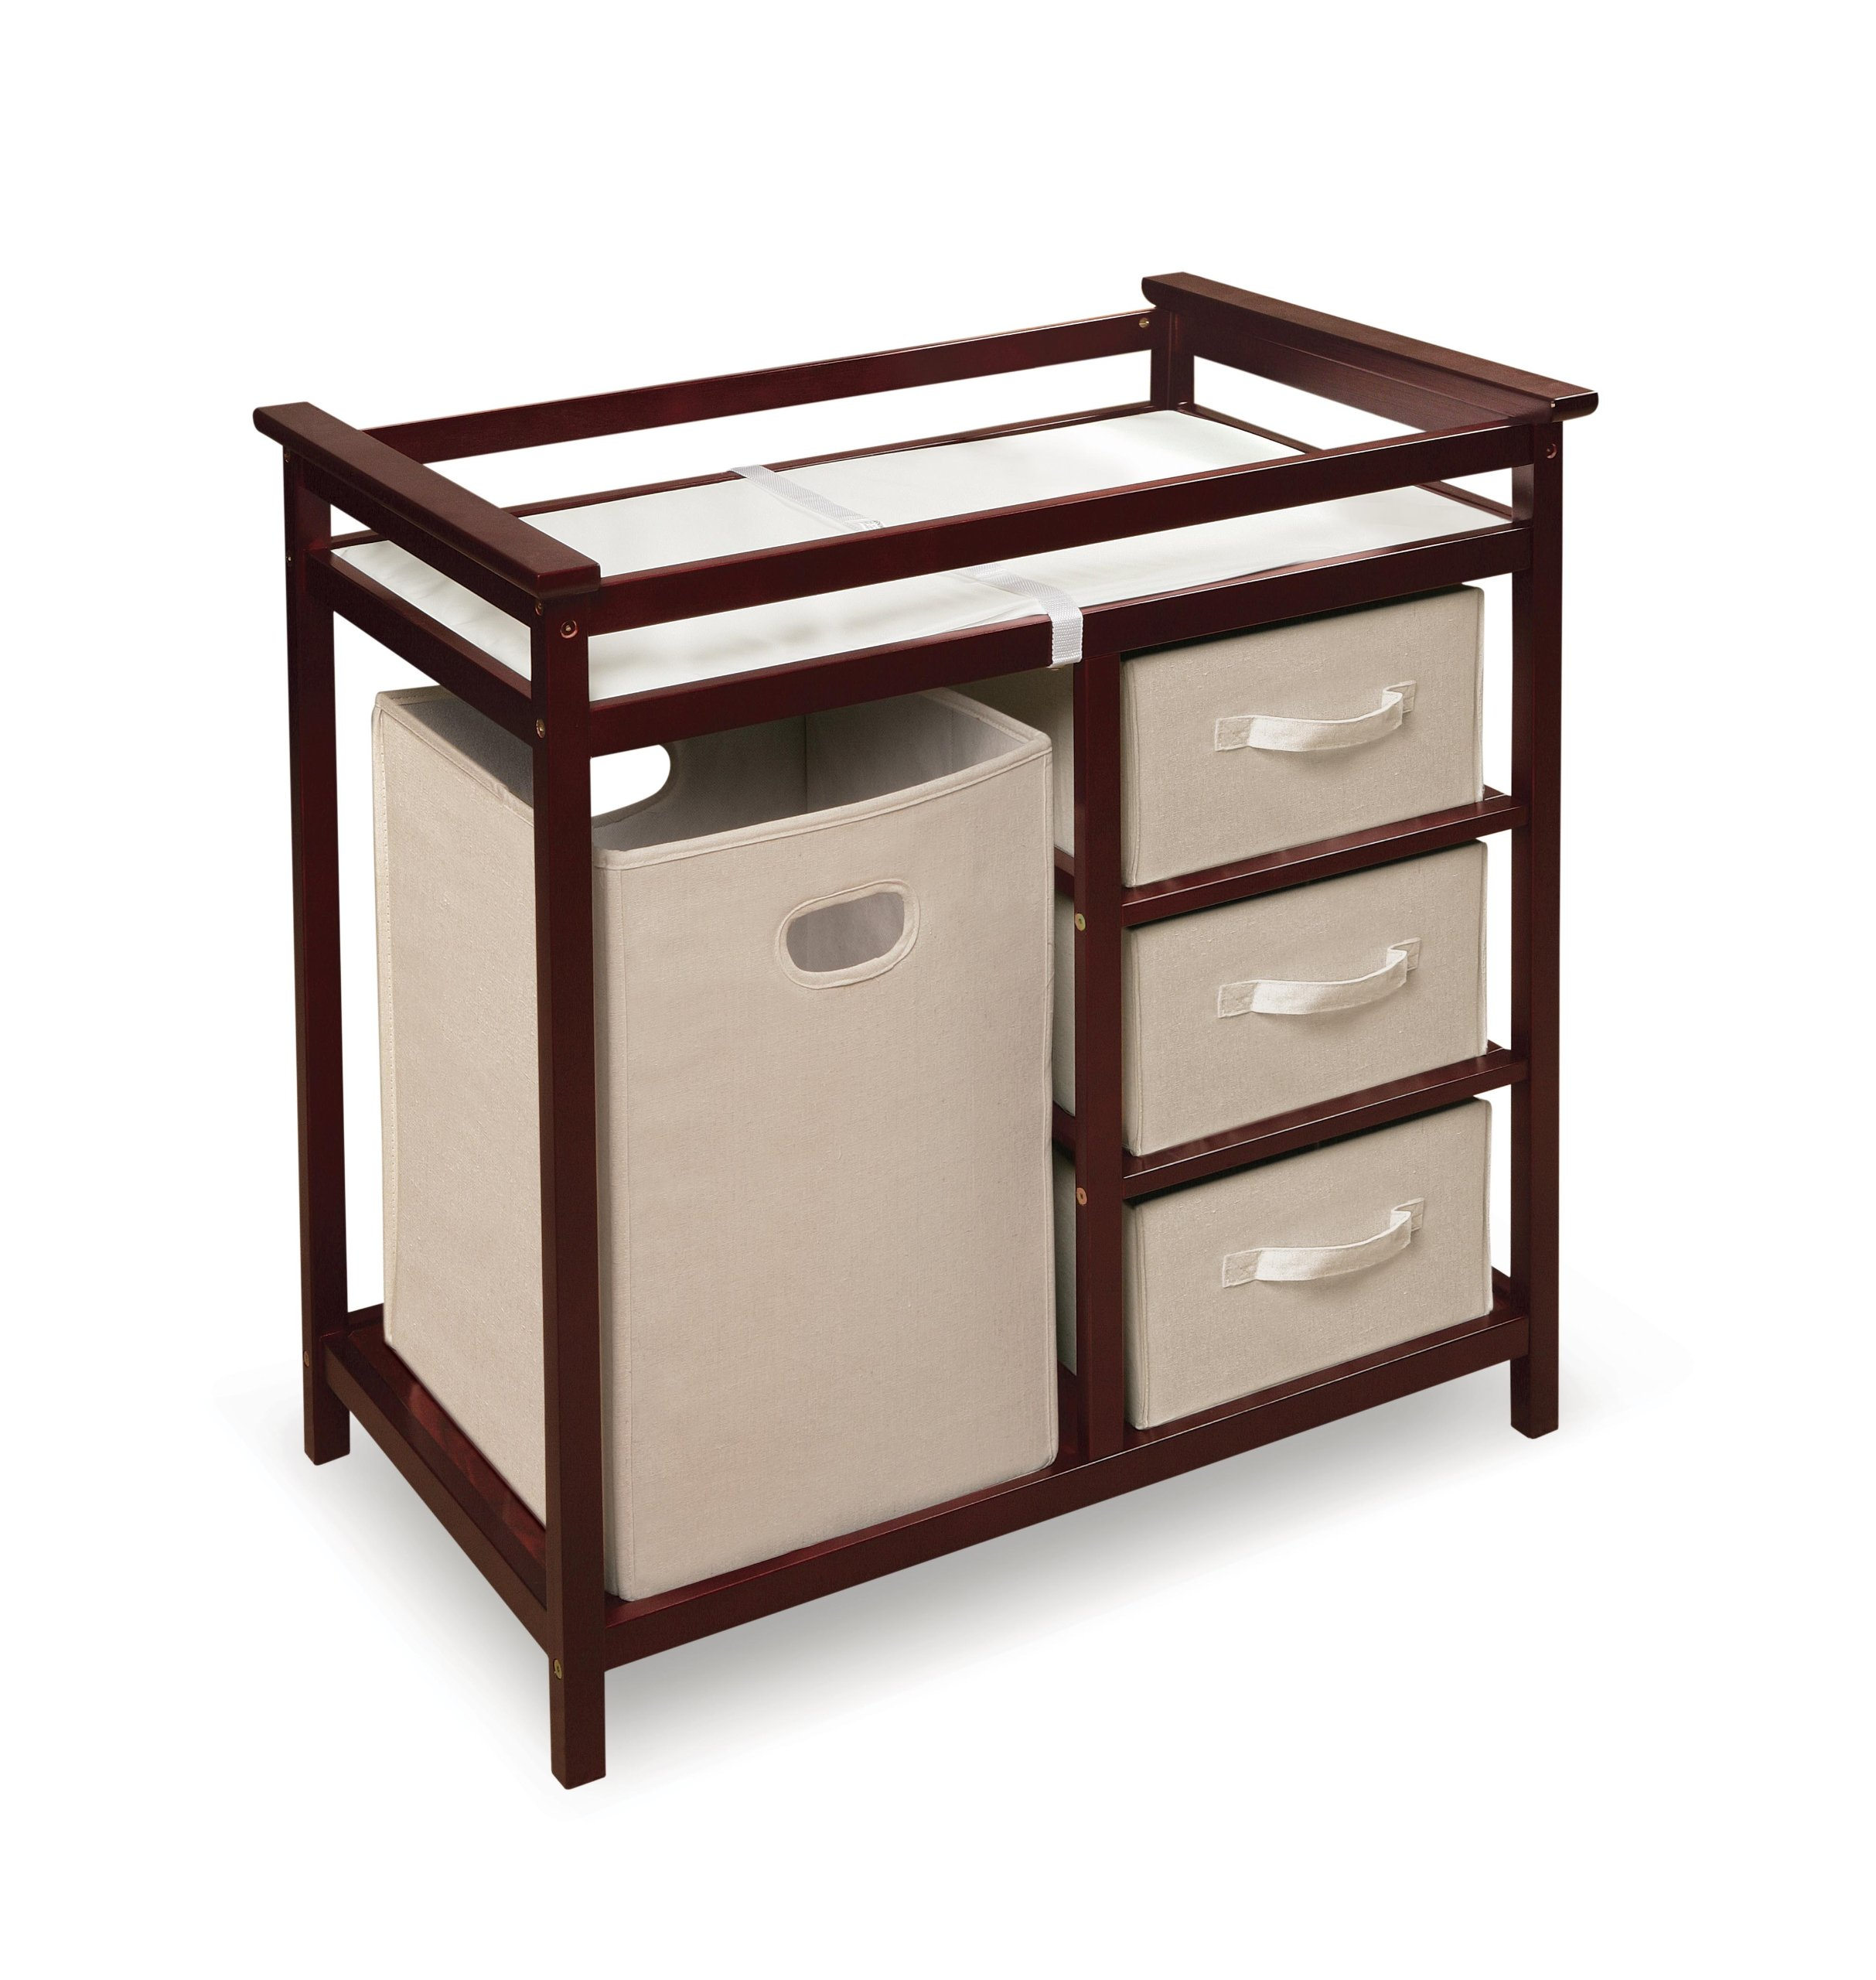 Badger Basket Modern Changing Table with 3 Baskets and Hamper, Cherry